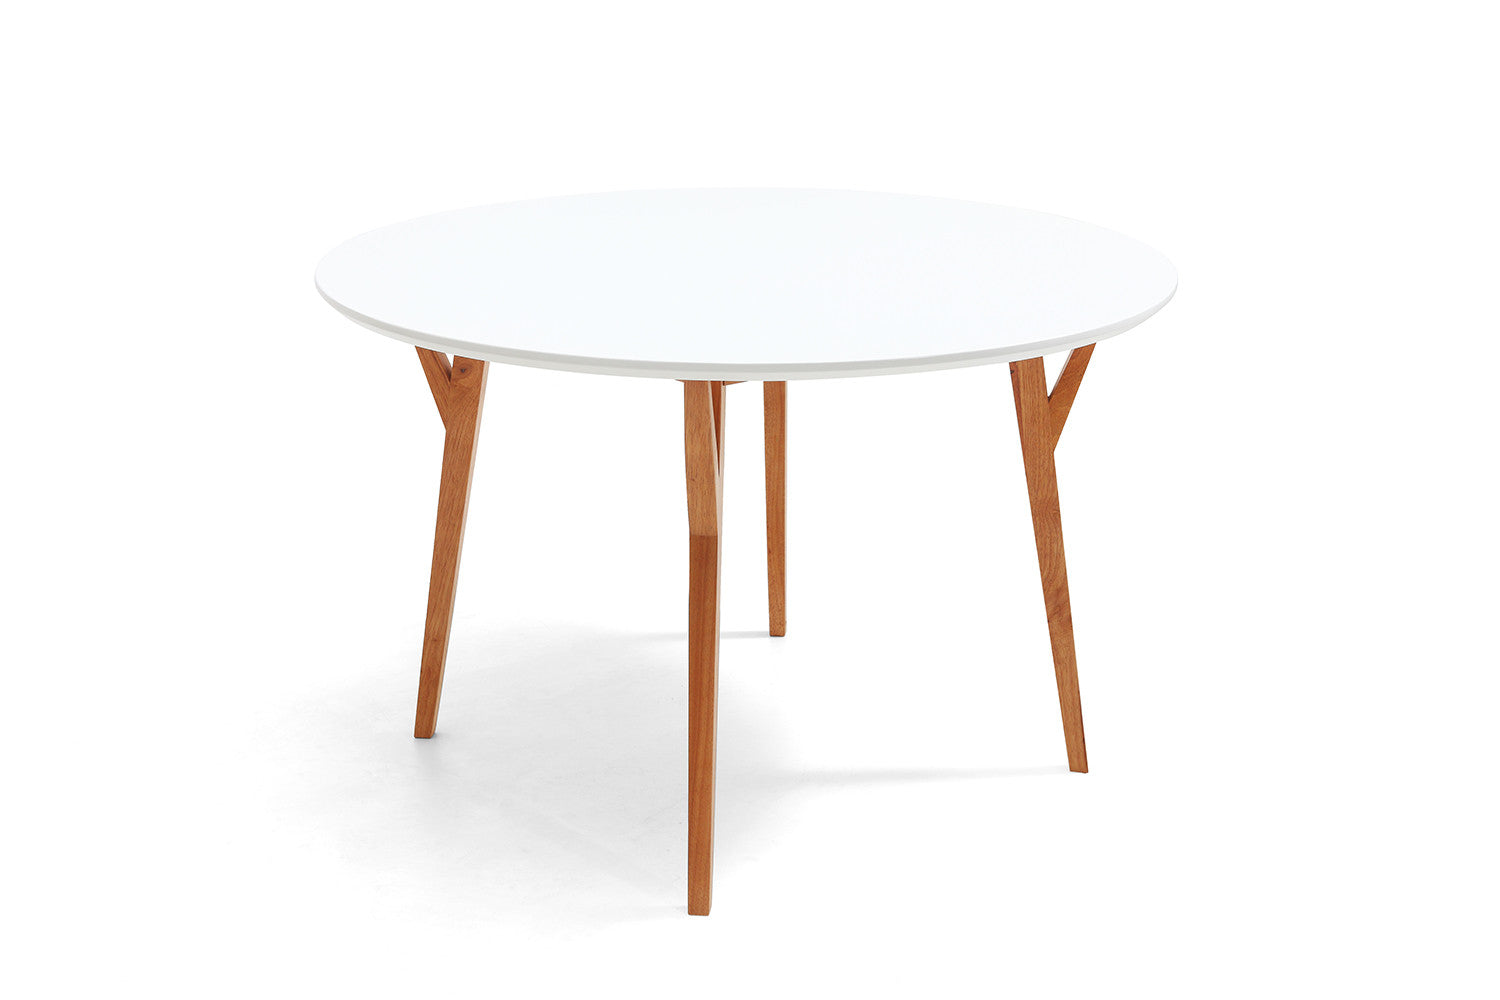 Table de salle manger ronde design scandinave moesa for Table de salle a manger annee 60